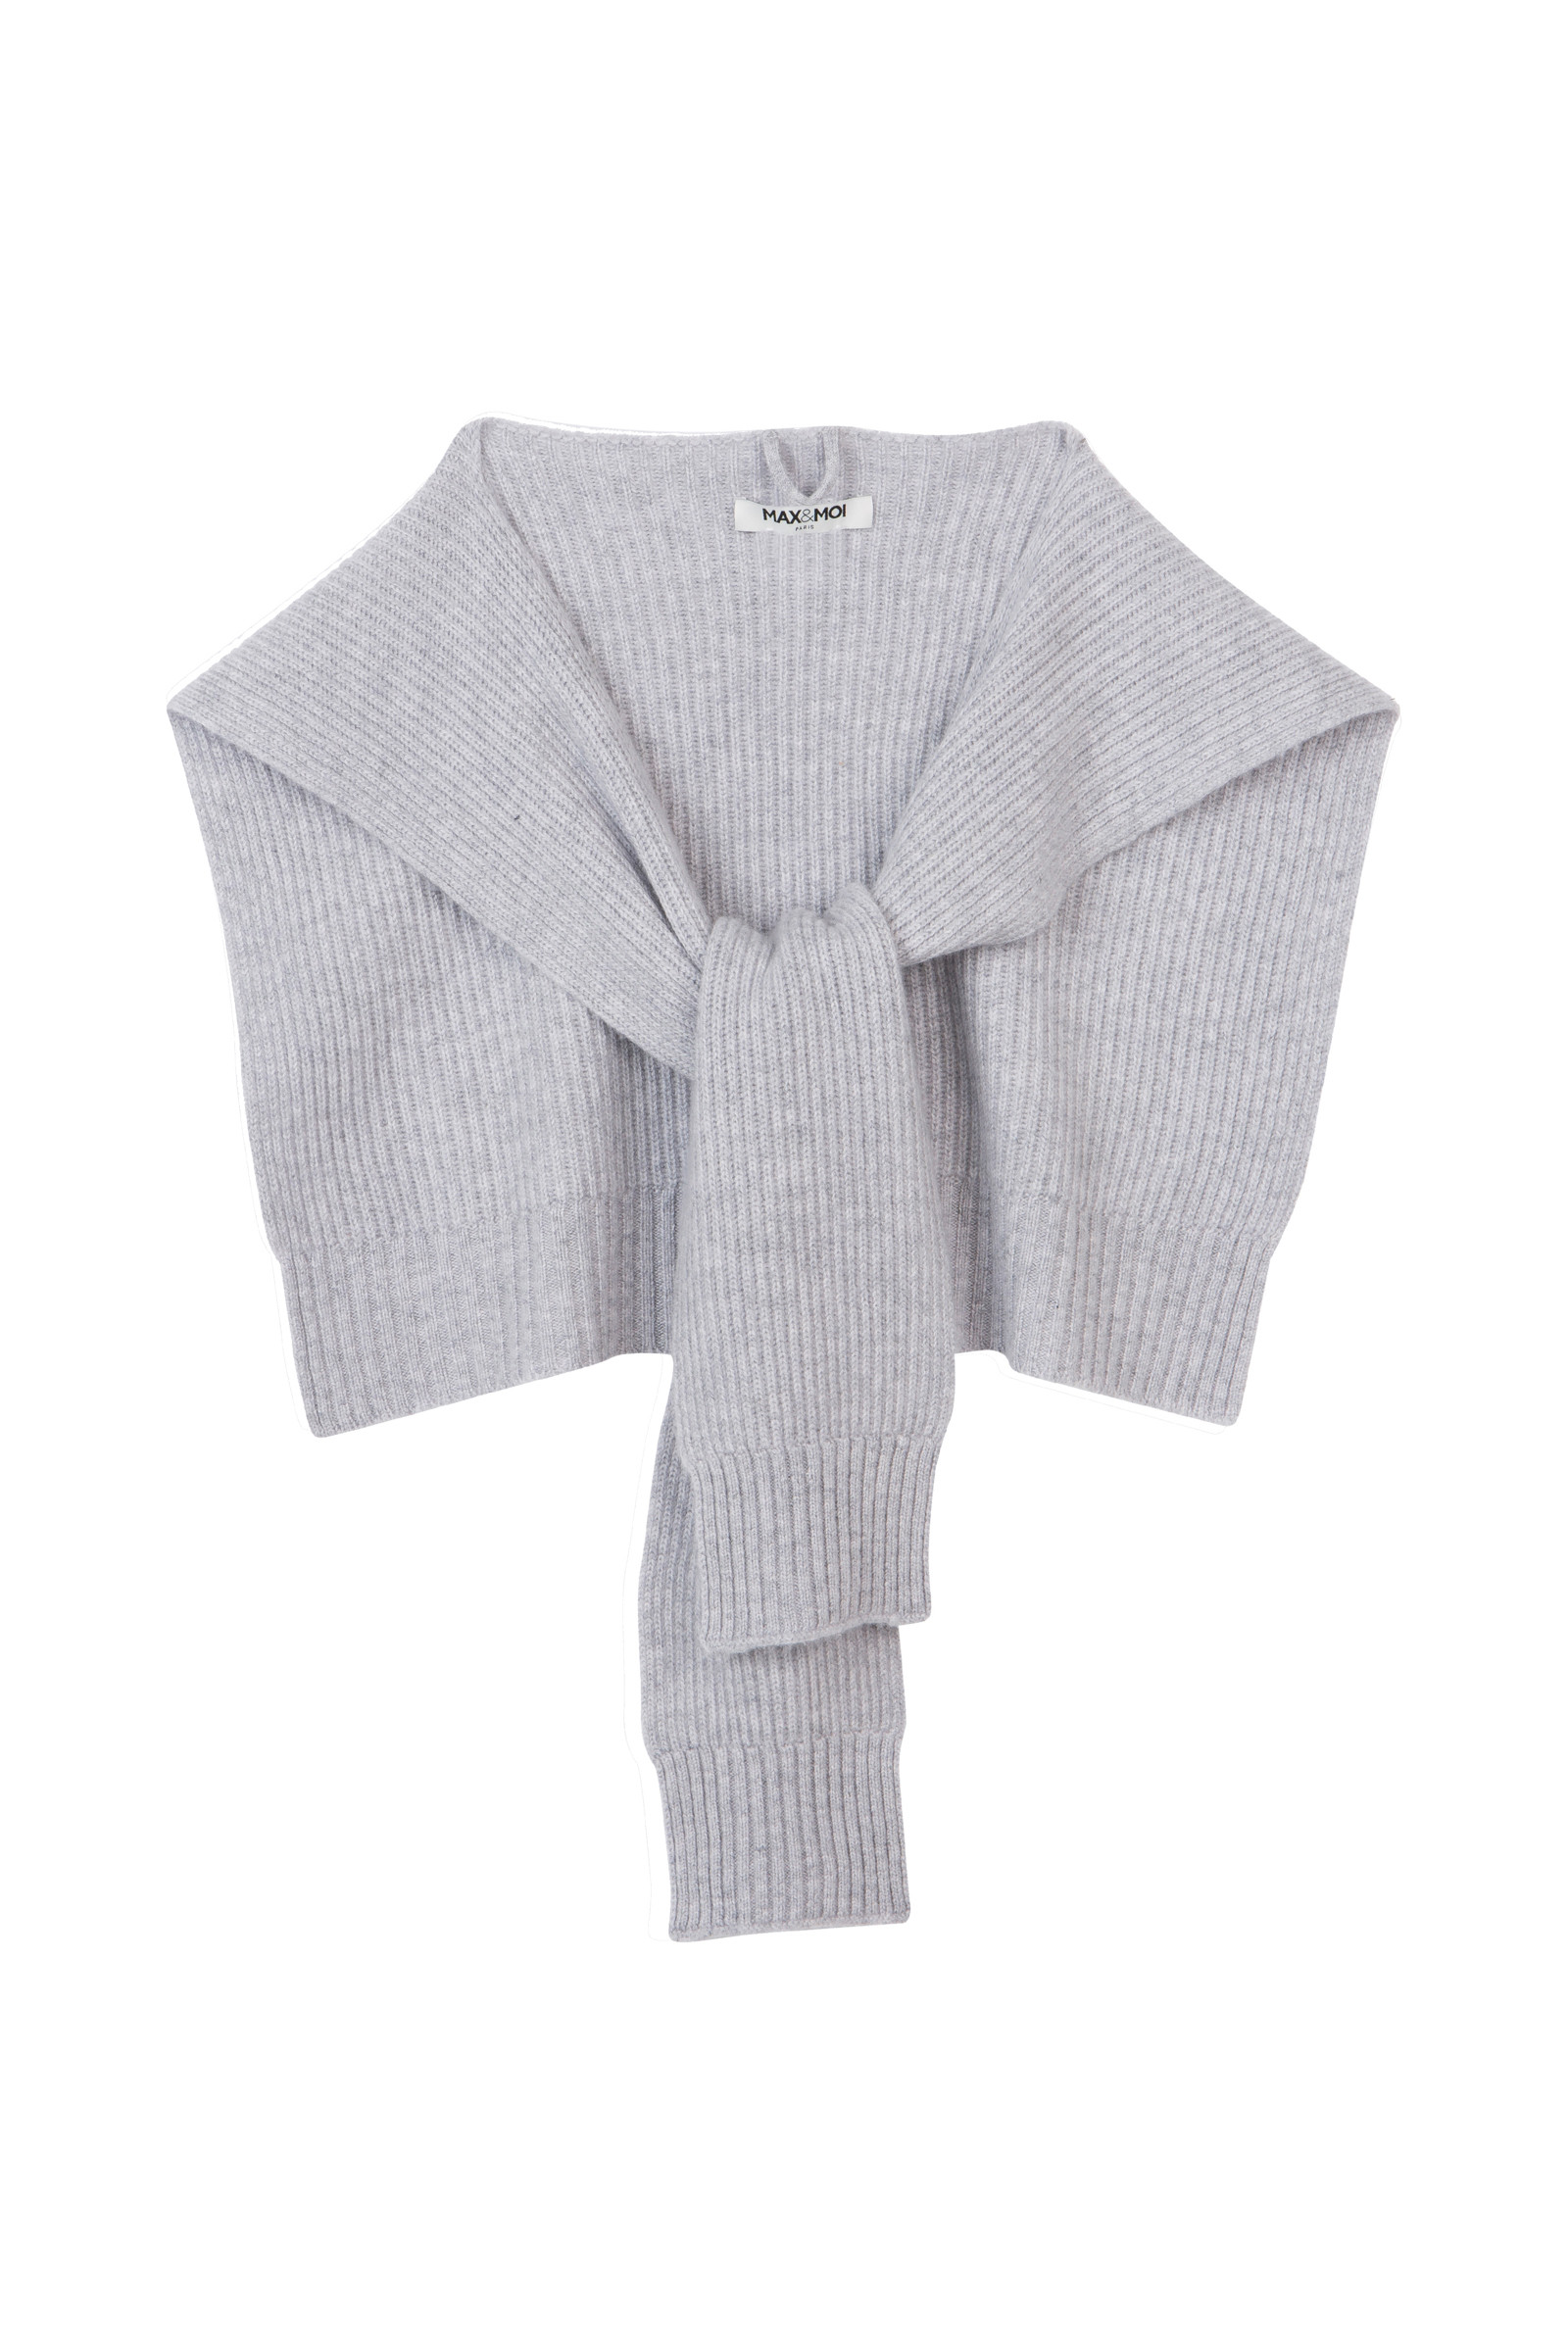 KNITTED SHAWL IN JERSEY KNIT AMORY  GREY